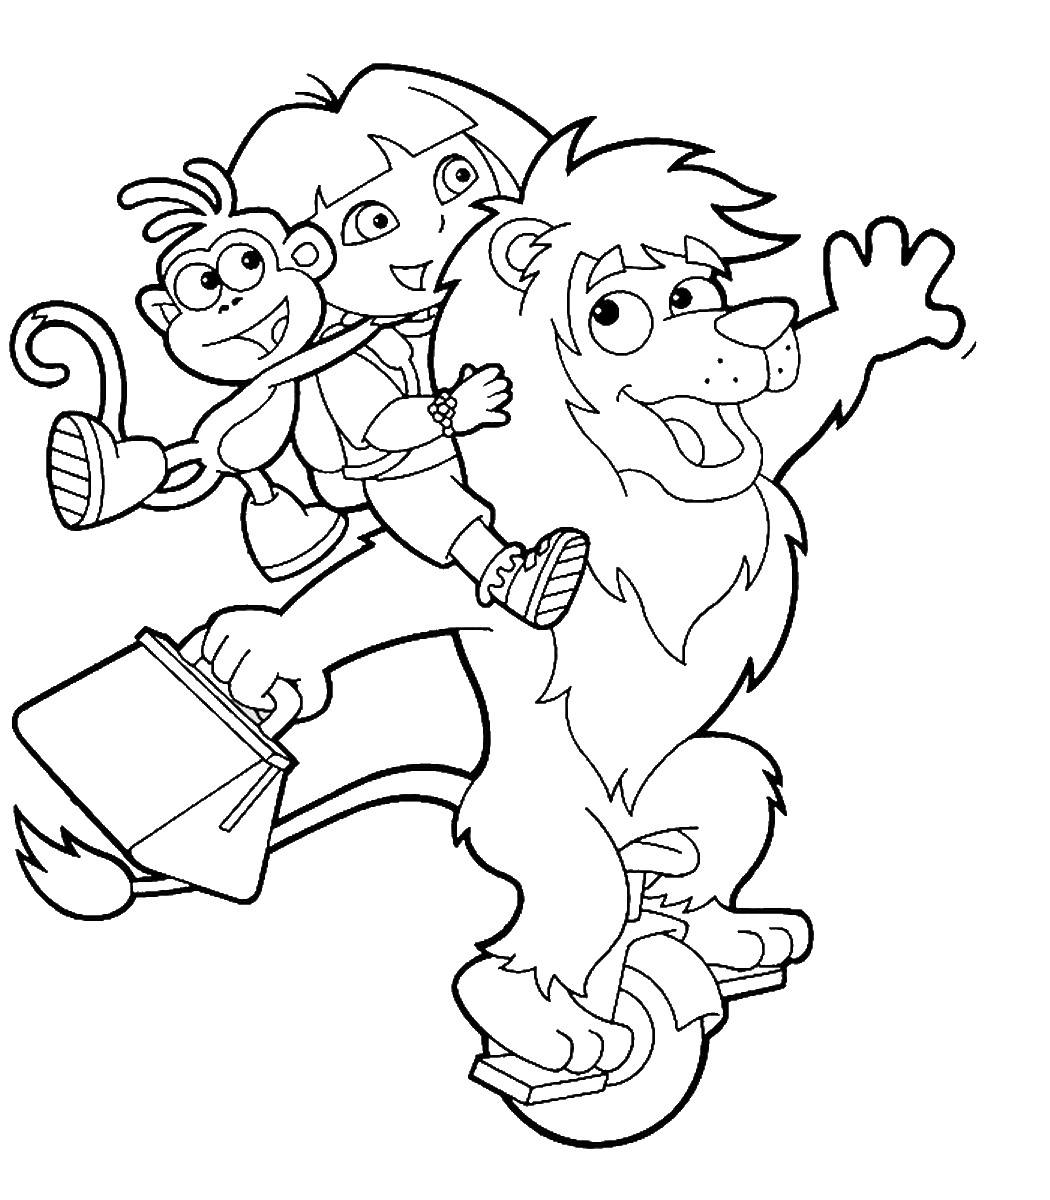 dora colouring pages printable dora printable s princess3725 coloring pages printable pages colouring dora printable